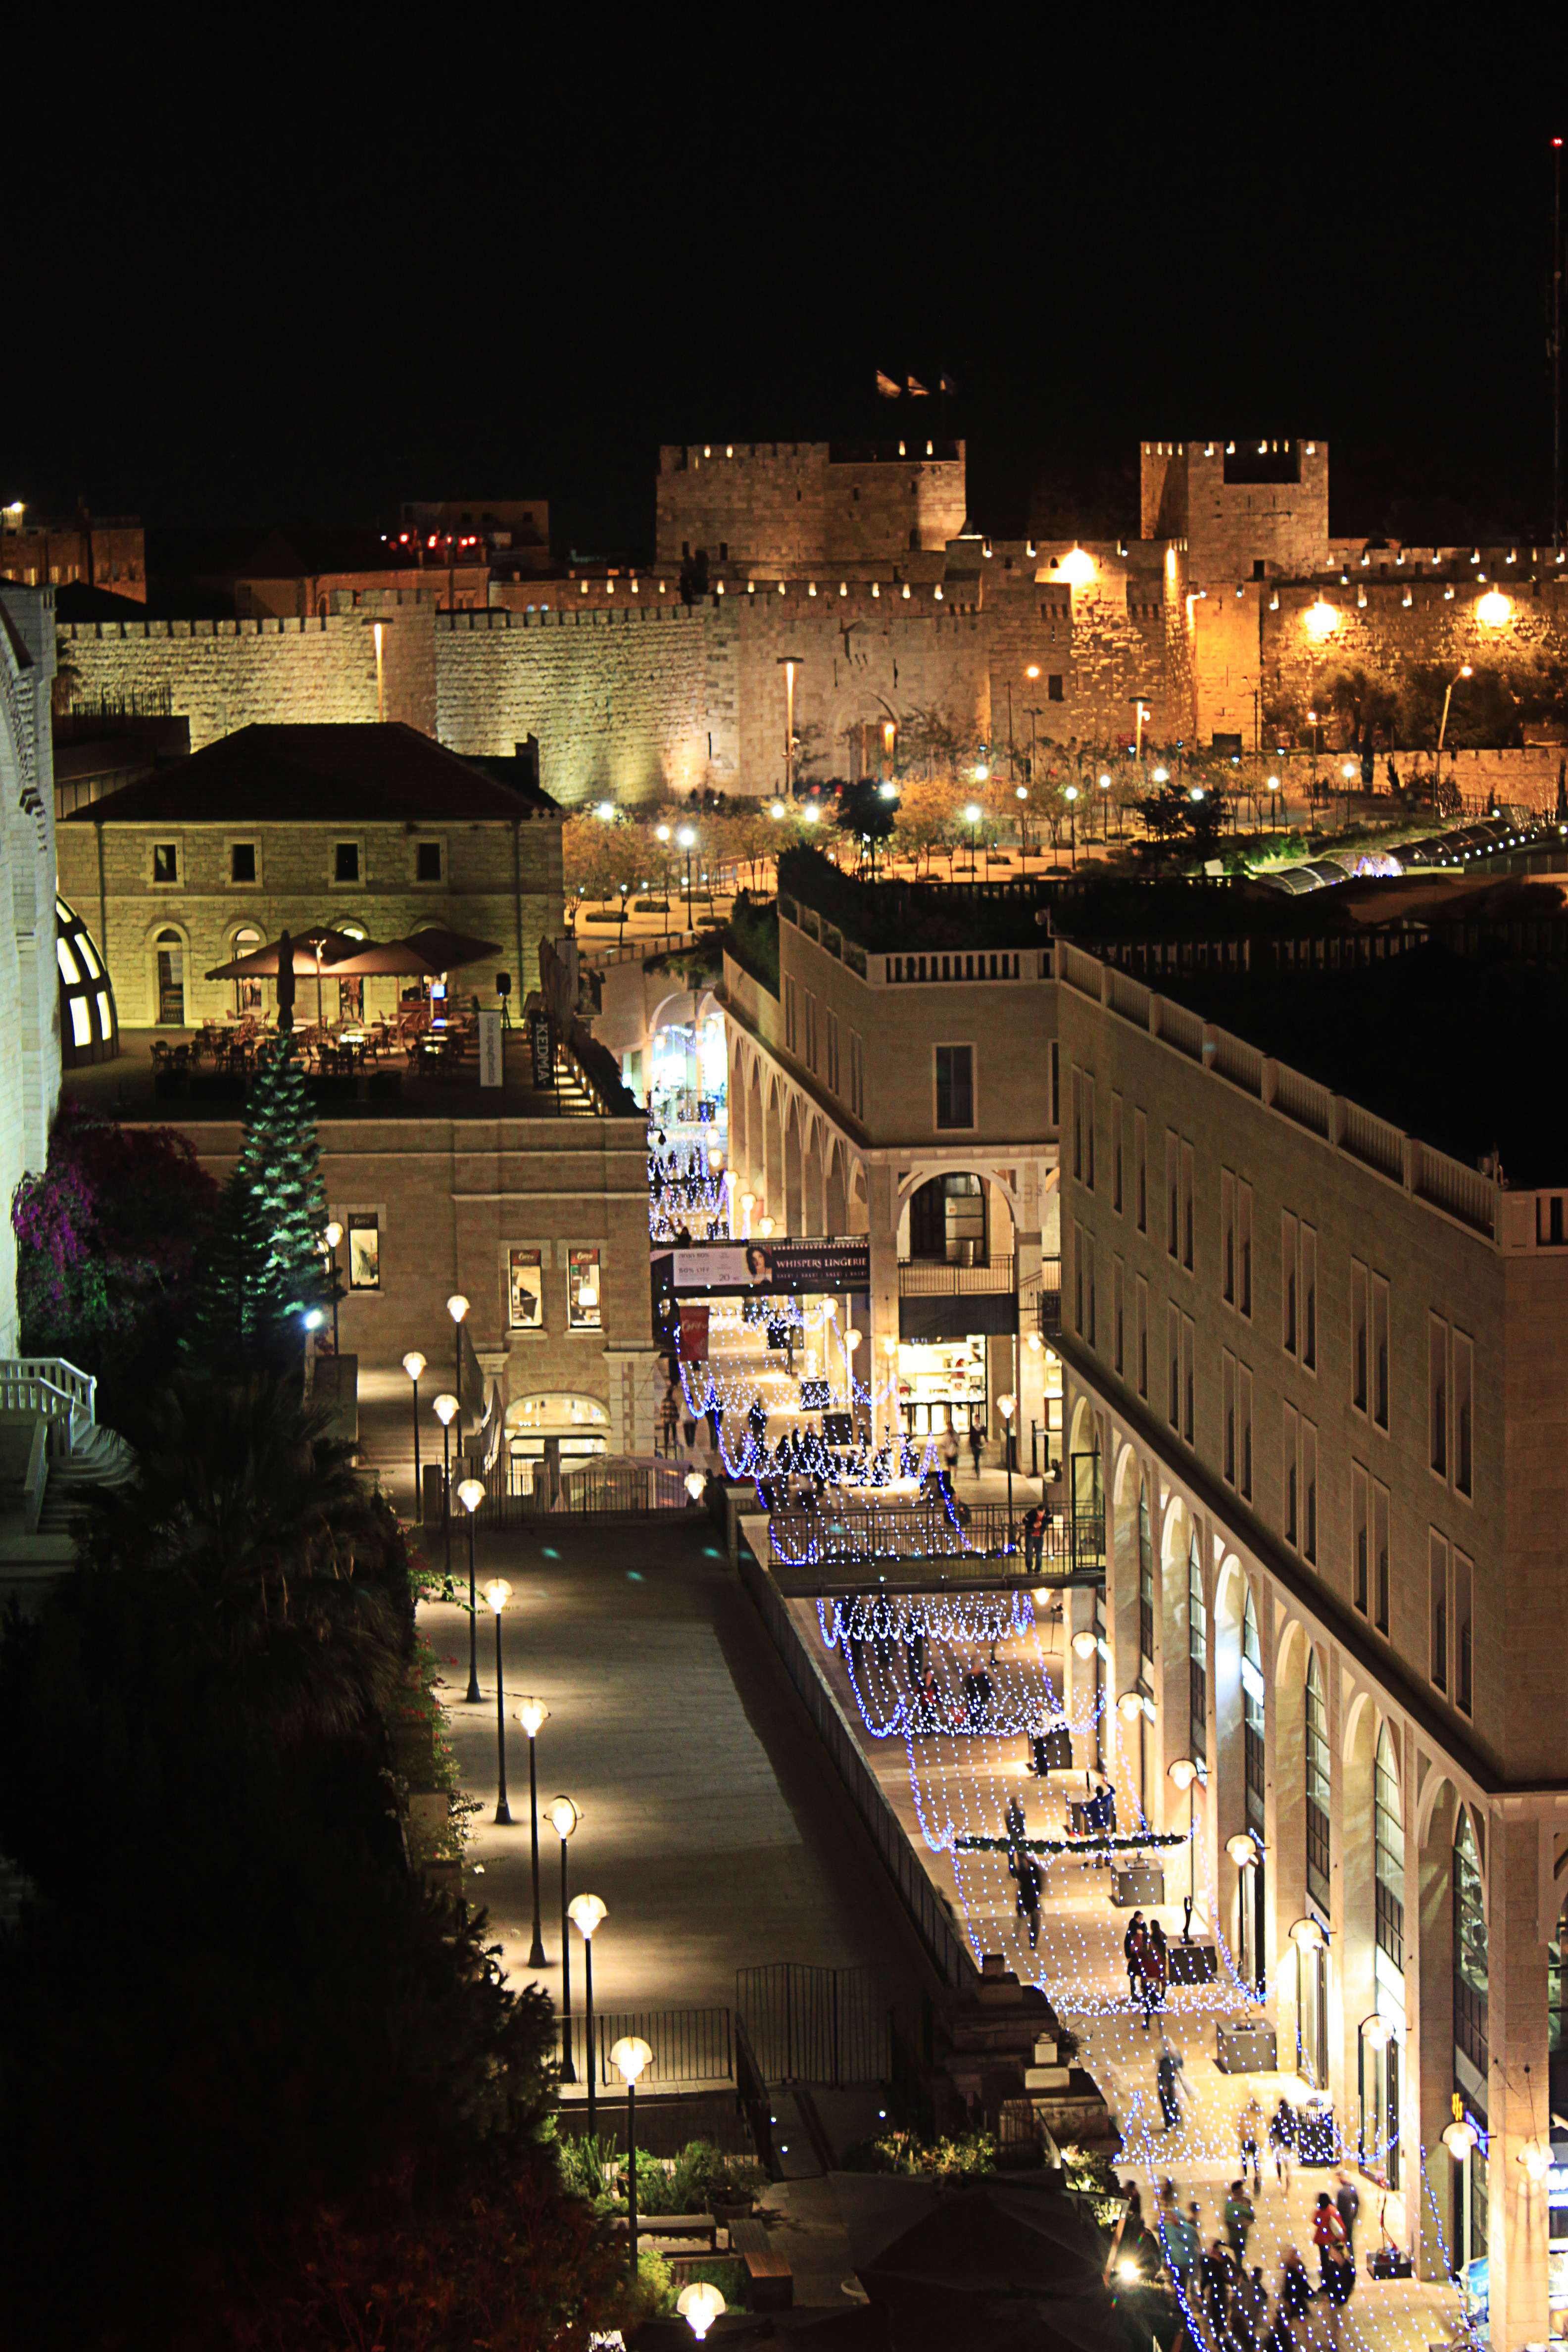 jerusalem personals Jobs:need jewelery sales personals (king david) need sales personals in  jewelery tourism in jerusalem most prestigious location ful.